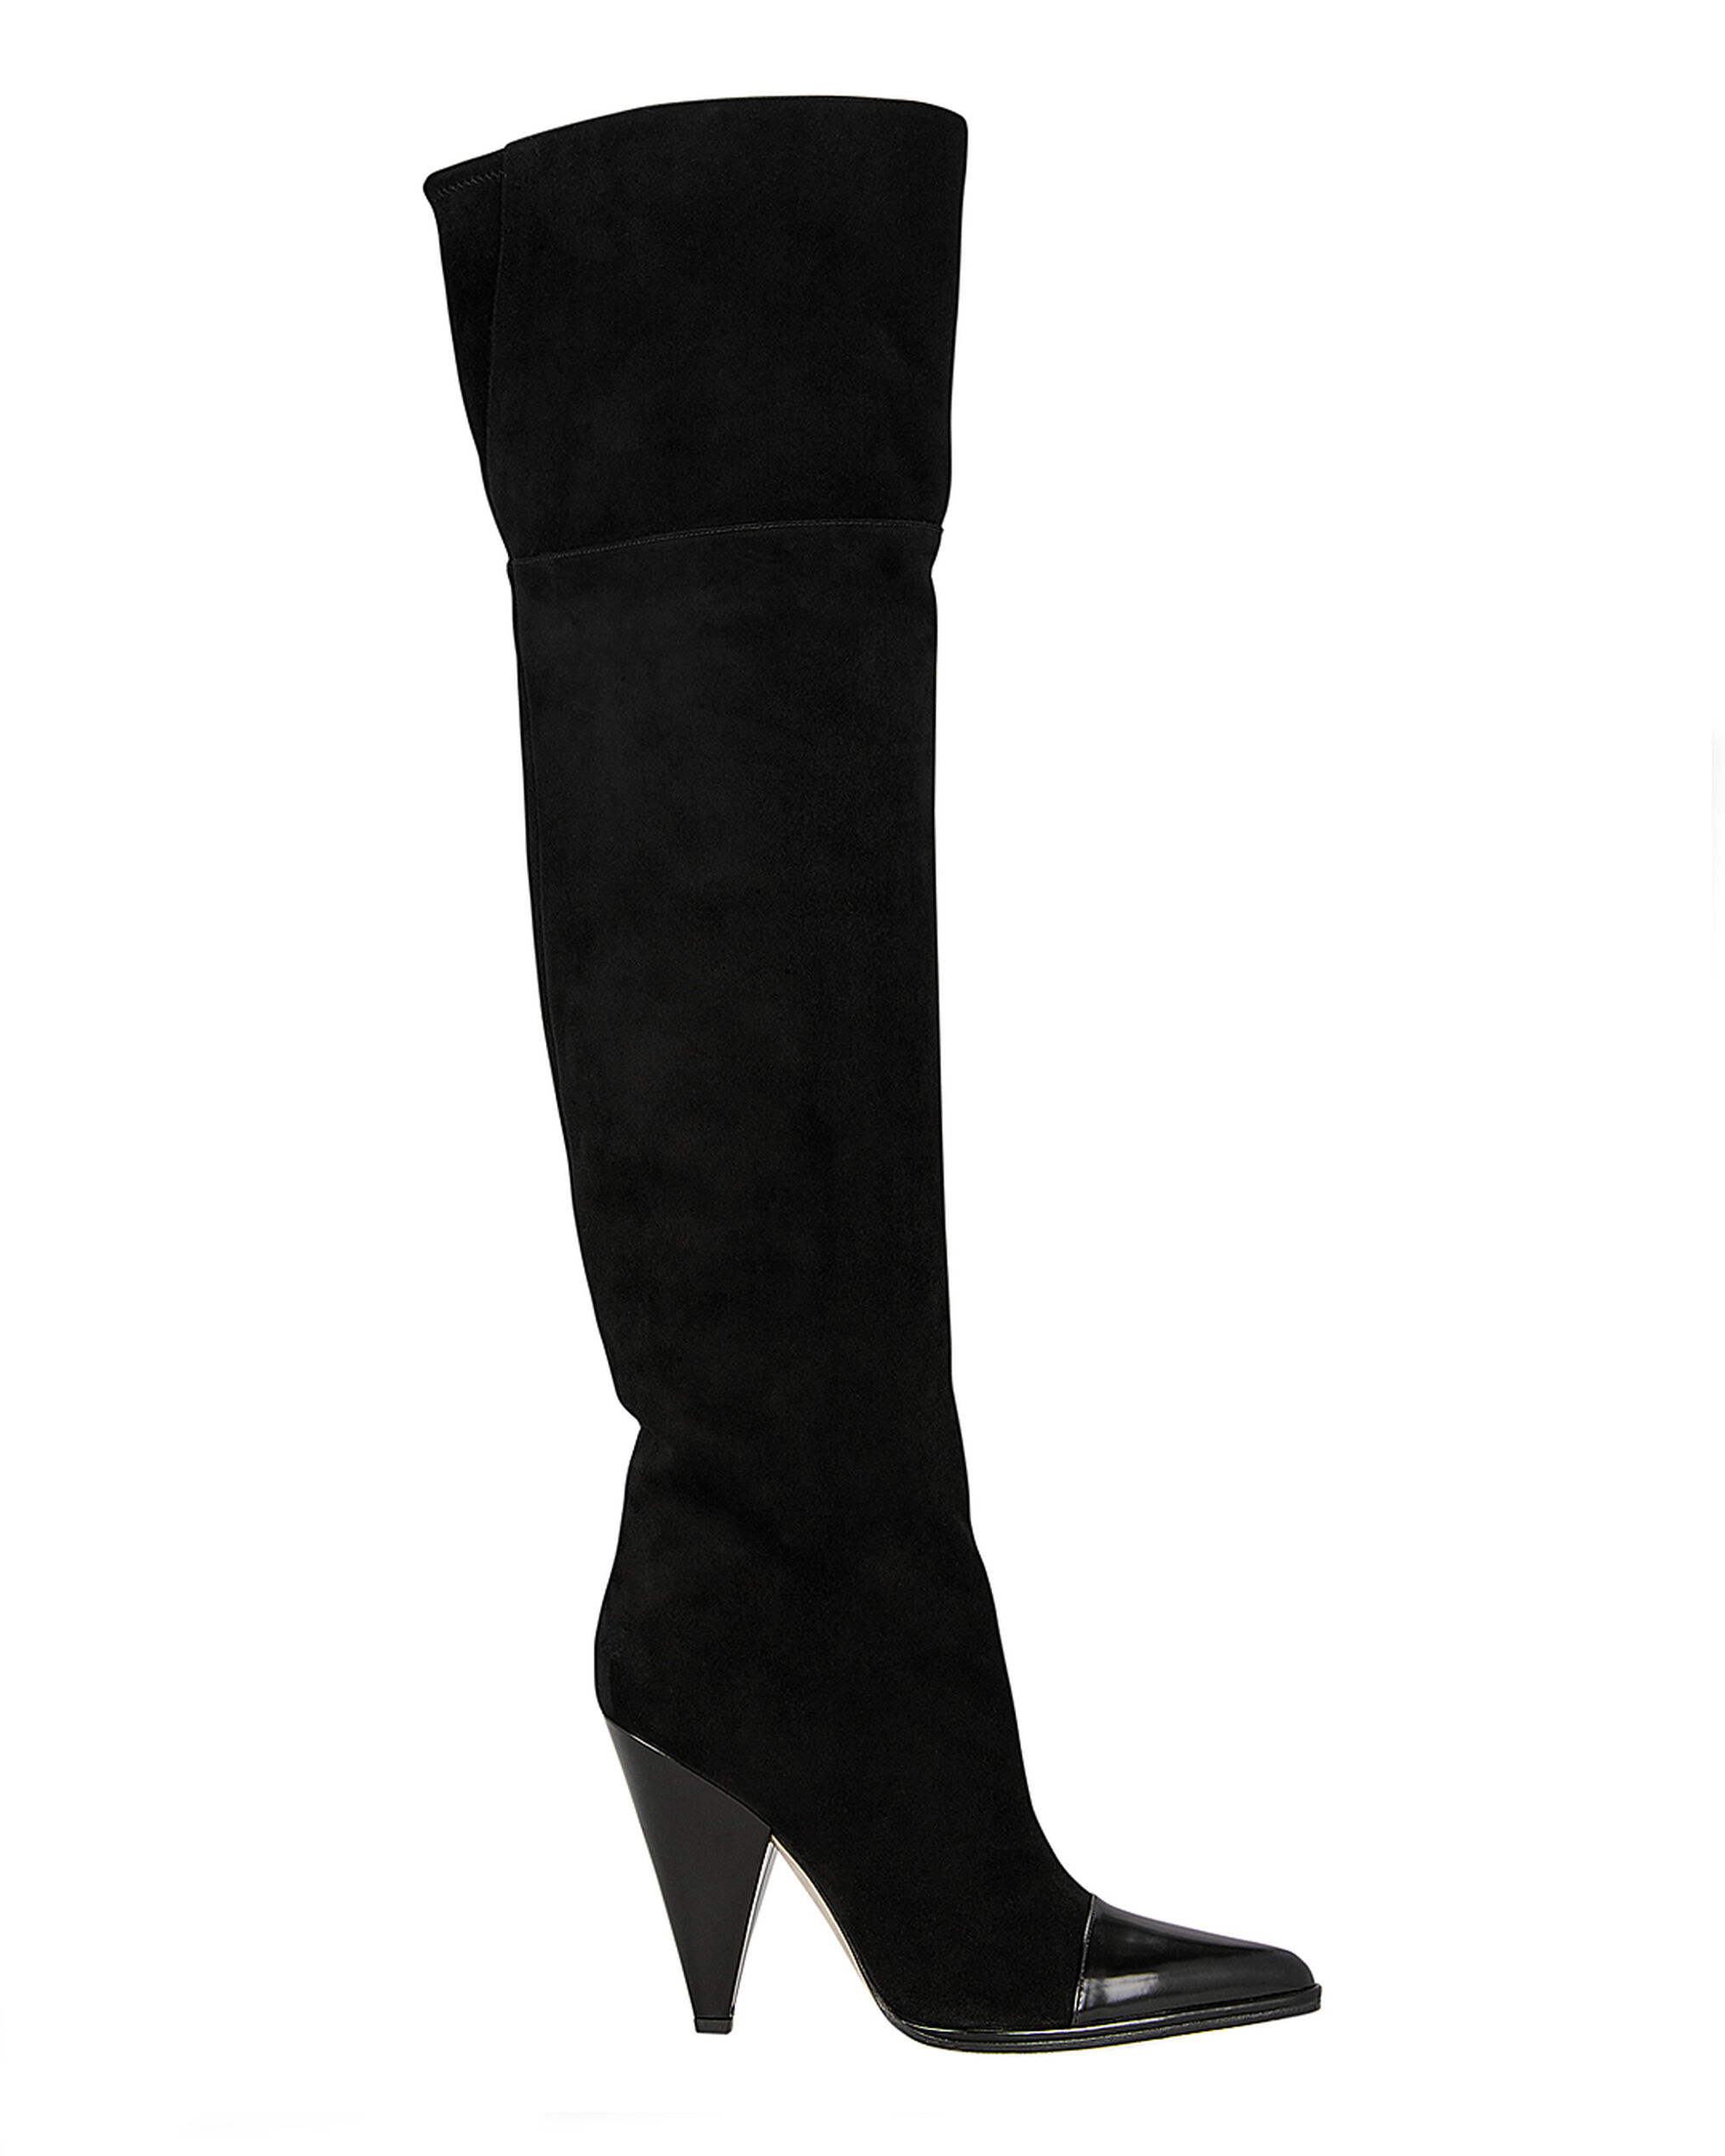 Carla Leather Cap Toe Suede Boots, BLACK, hi-res